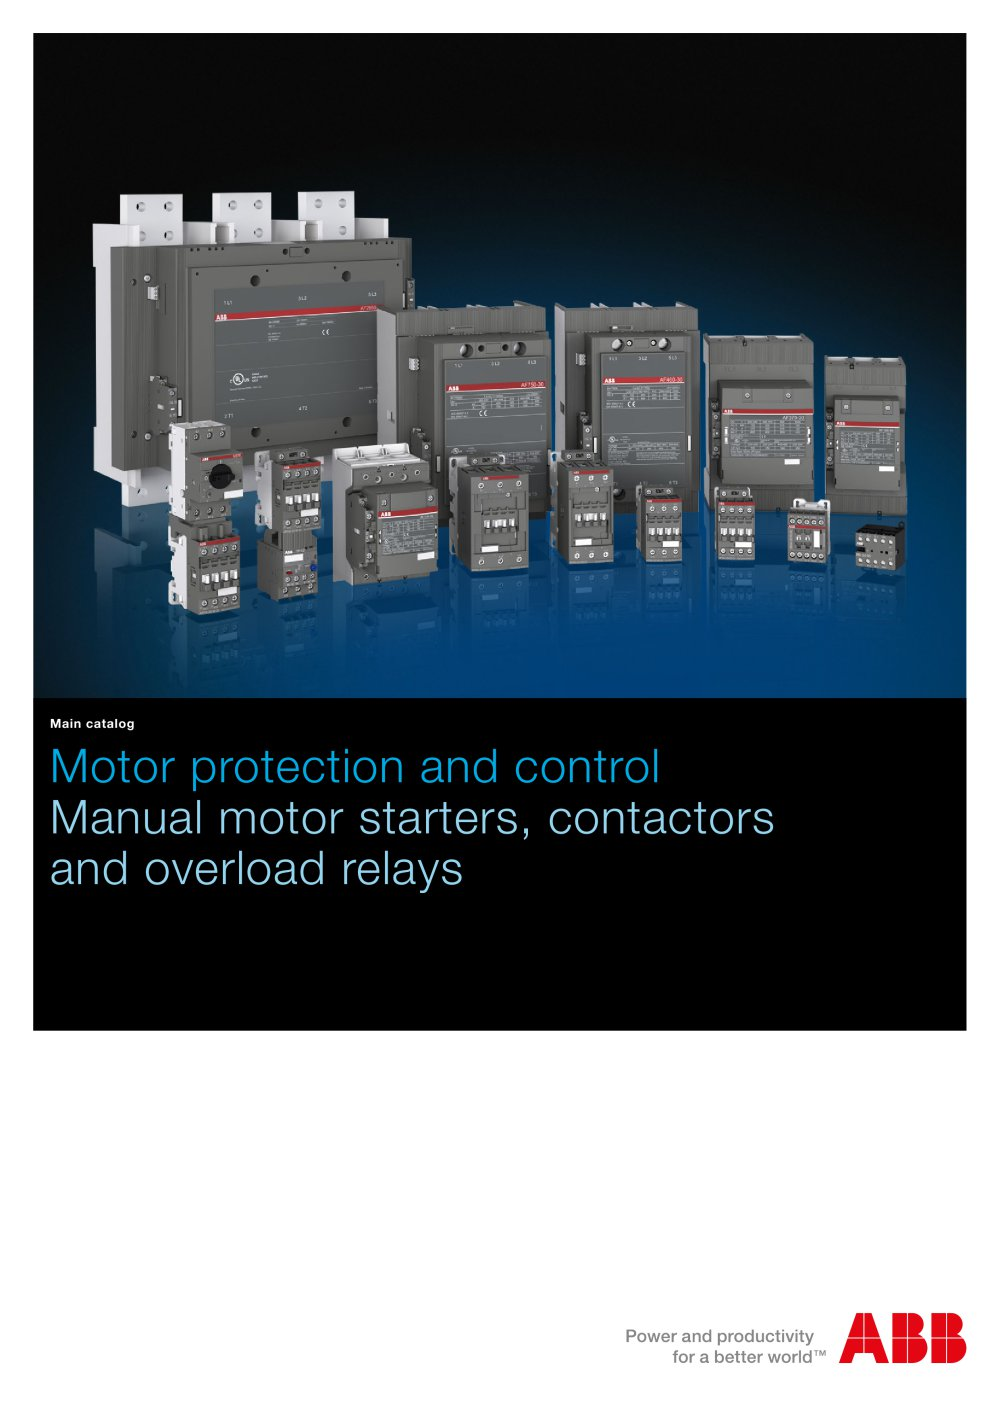 Motor Protection And Control Manual Starters Contactors Relay Coil Energy Saver Overload Relays 1 808 Pages